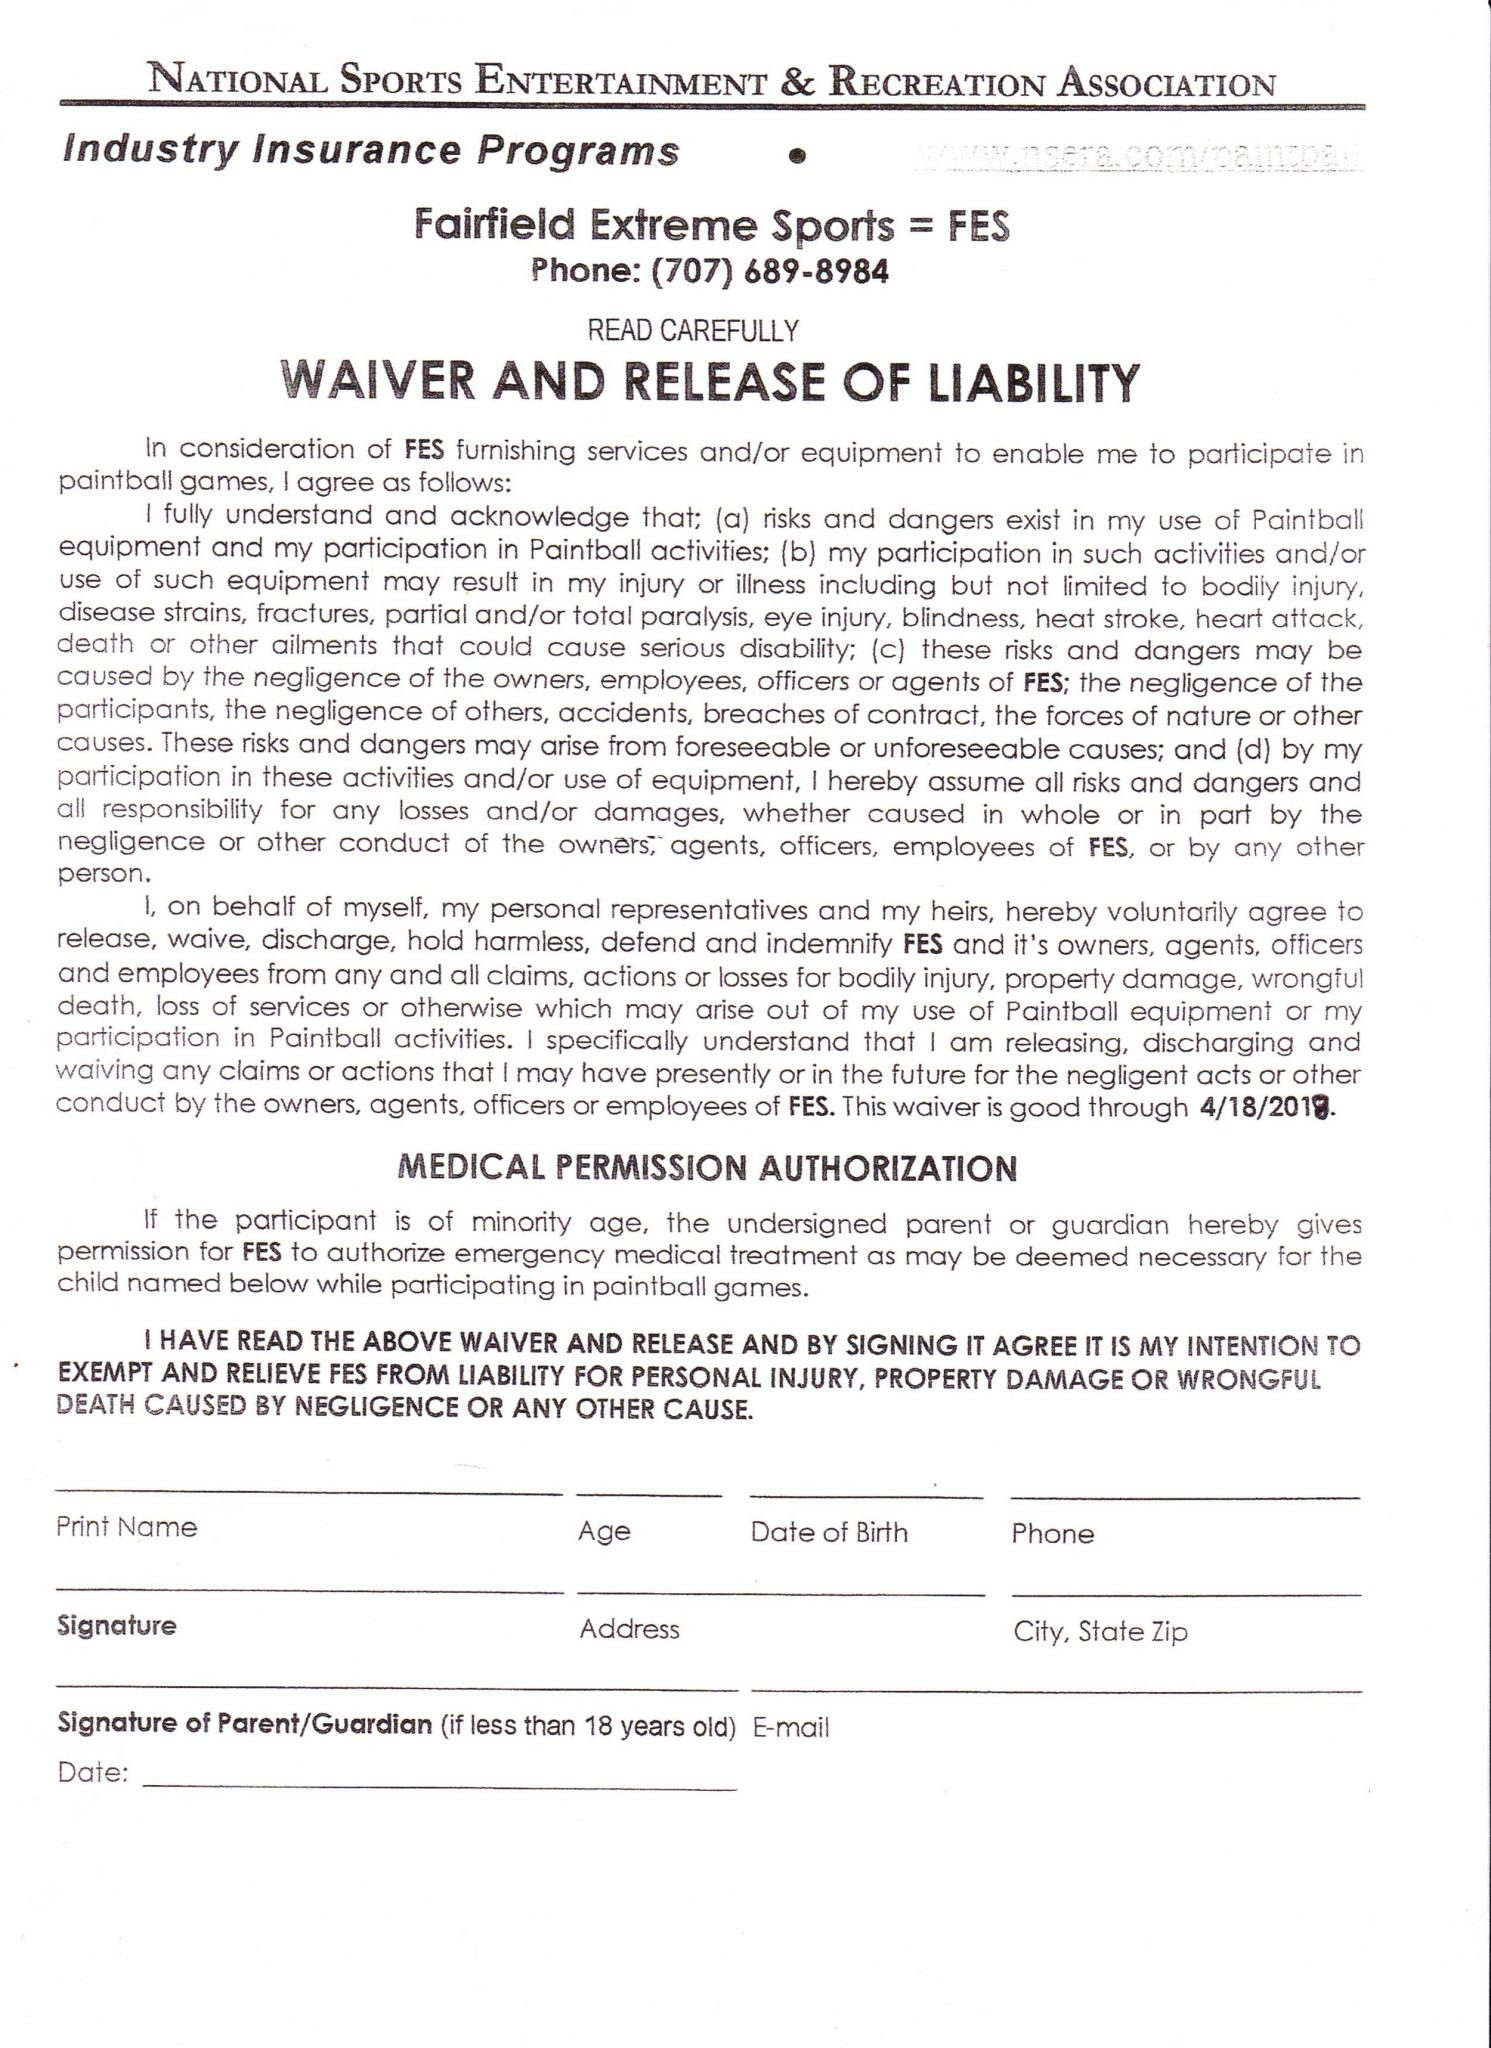 Fairfield Extreme Sports Safety Waiver